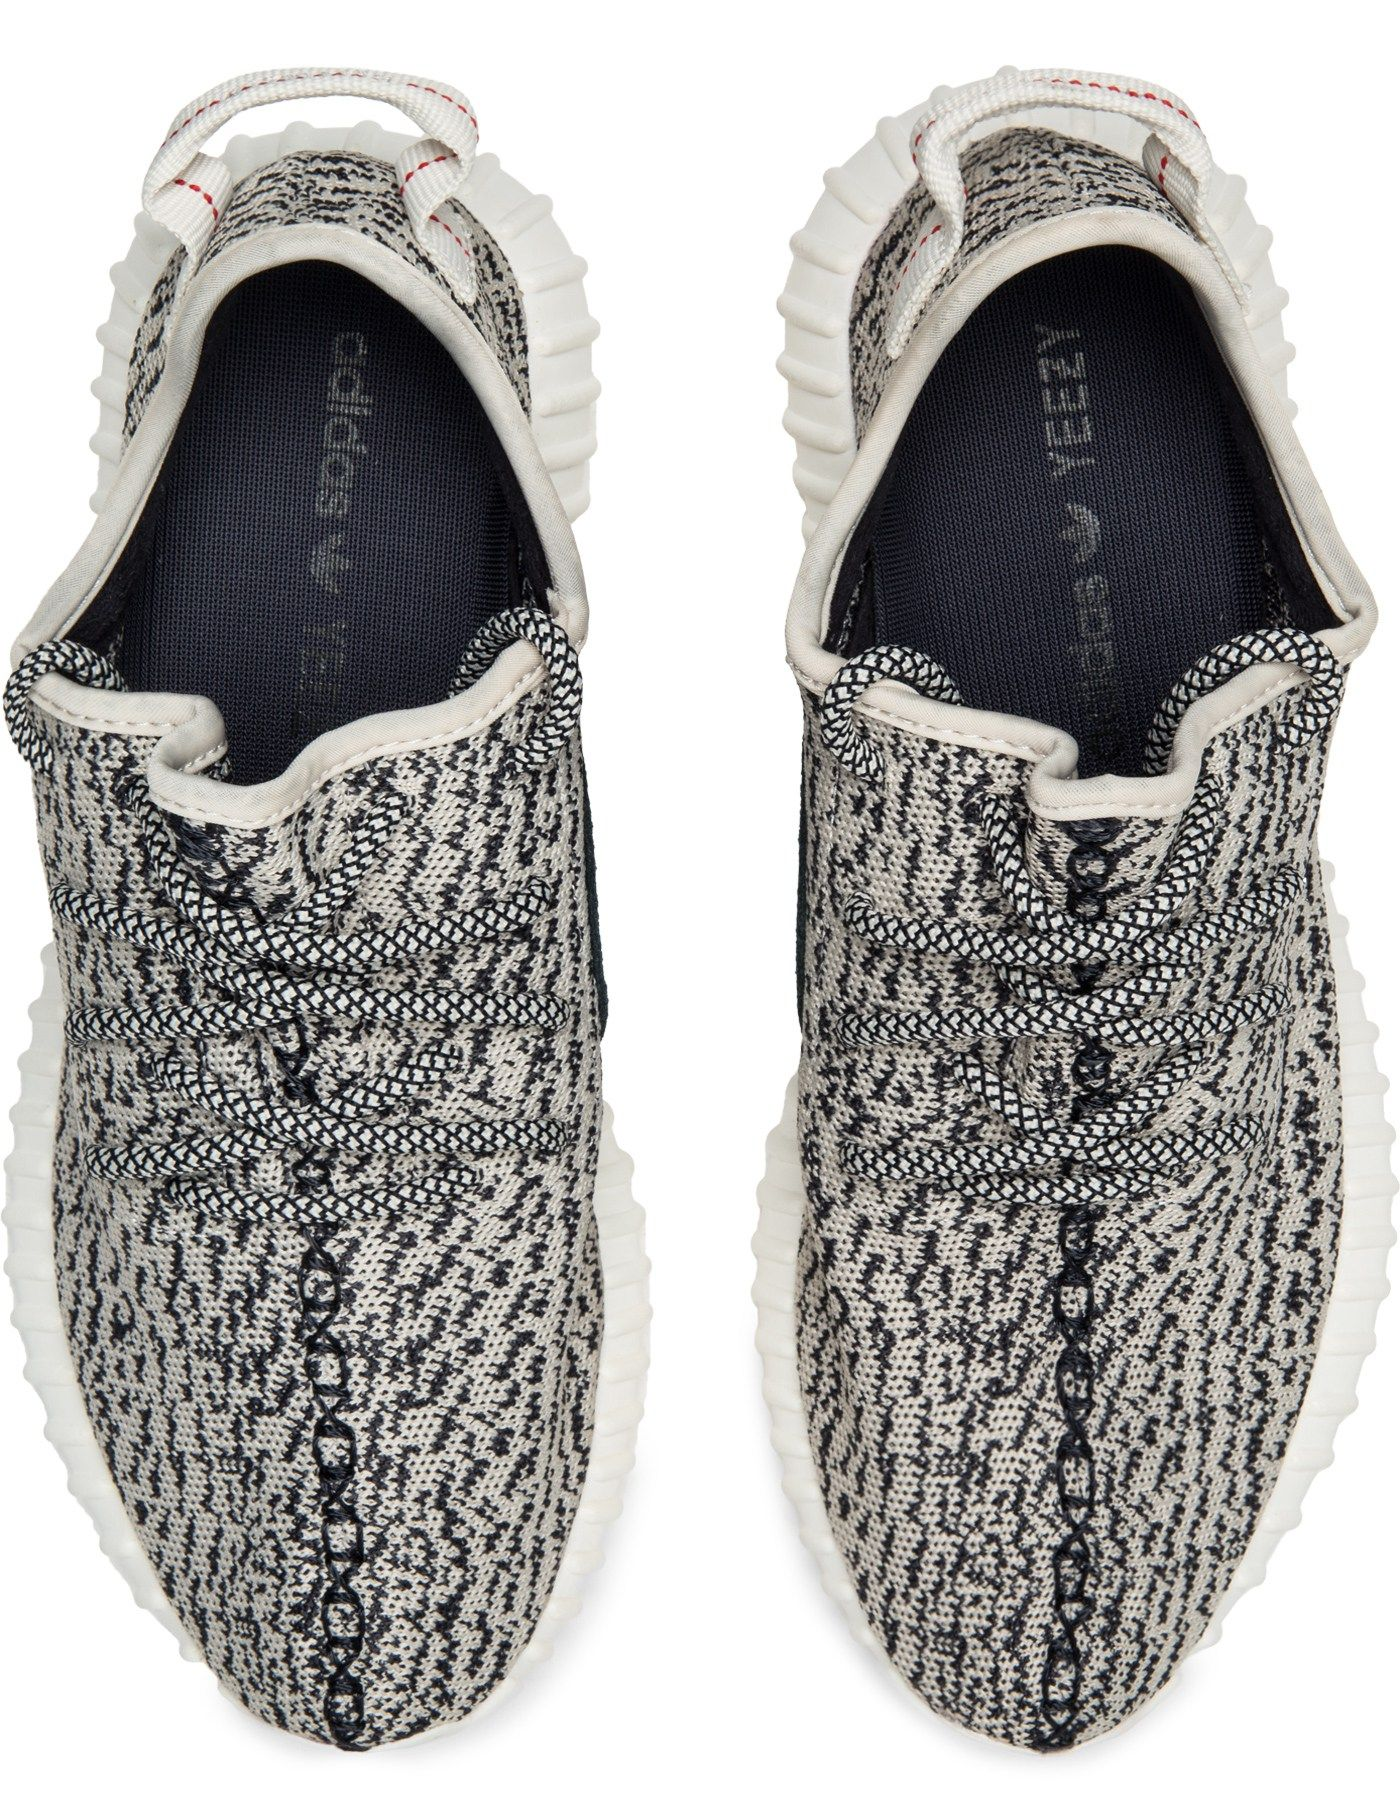 acbcfdf2ebee7b Shop adidas Yeezy Boost 350 Turtle Dove at HBX. Free Worldwide Shipping  available.